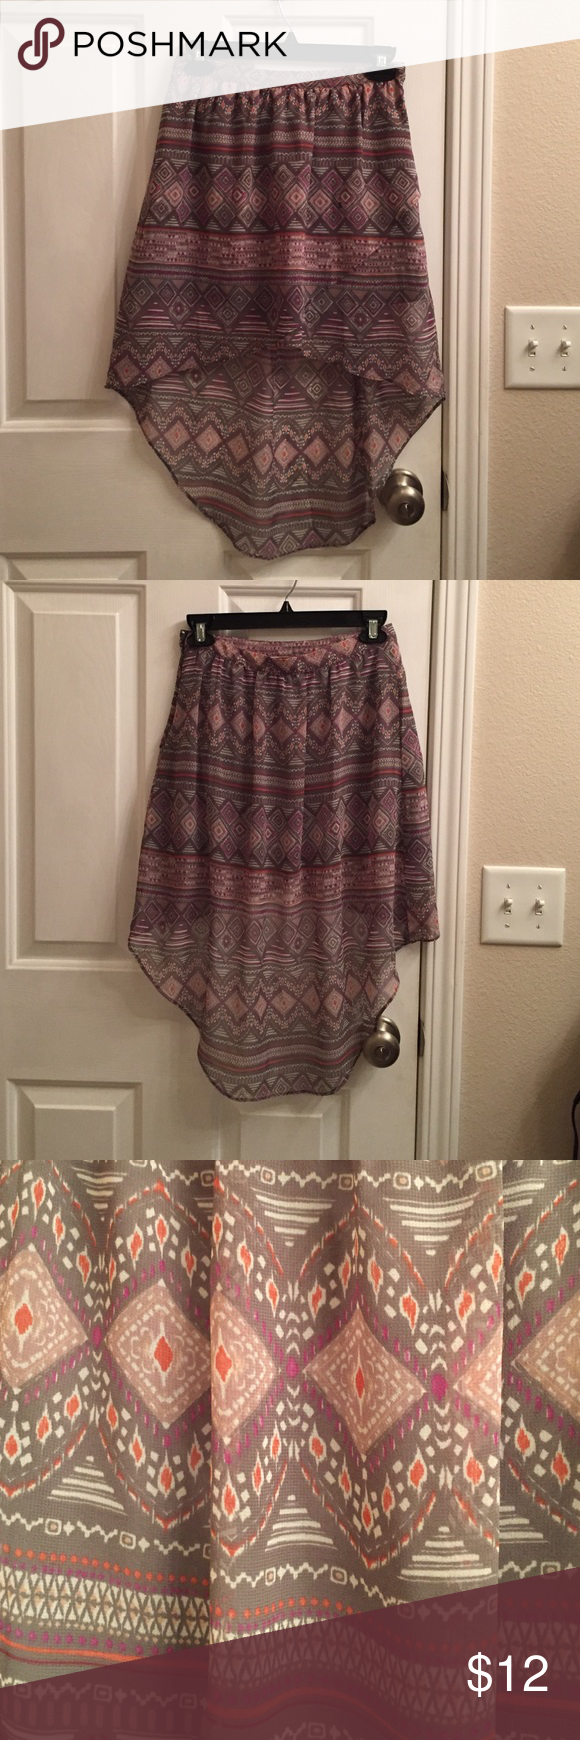 NWT 00 AE chiffon High Low skirt Nothing!!!! More romantic than a delicate printed hi-low skirt in muted greys and soft pinks/mauves/corals. This is a 00 skirt by American Eagle with the tag still attached. Perfect to romp around in this summer :) American Eagle Outfitters Skirts High Low